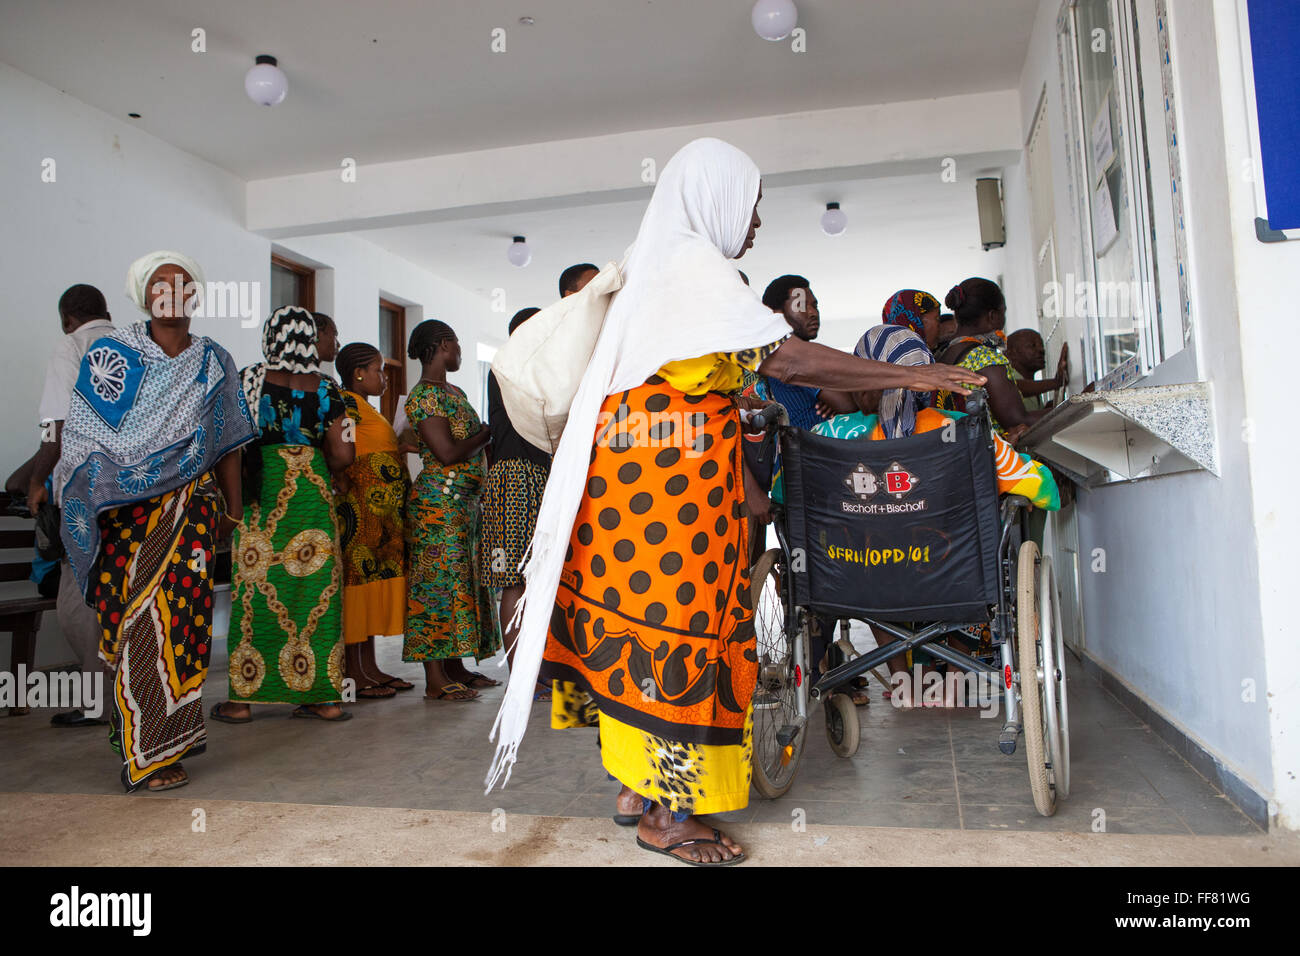 Patients arriving at the reception area of OPD in St. Francis Hospital, Ifakara, Tanzania - Stock Image